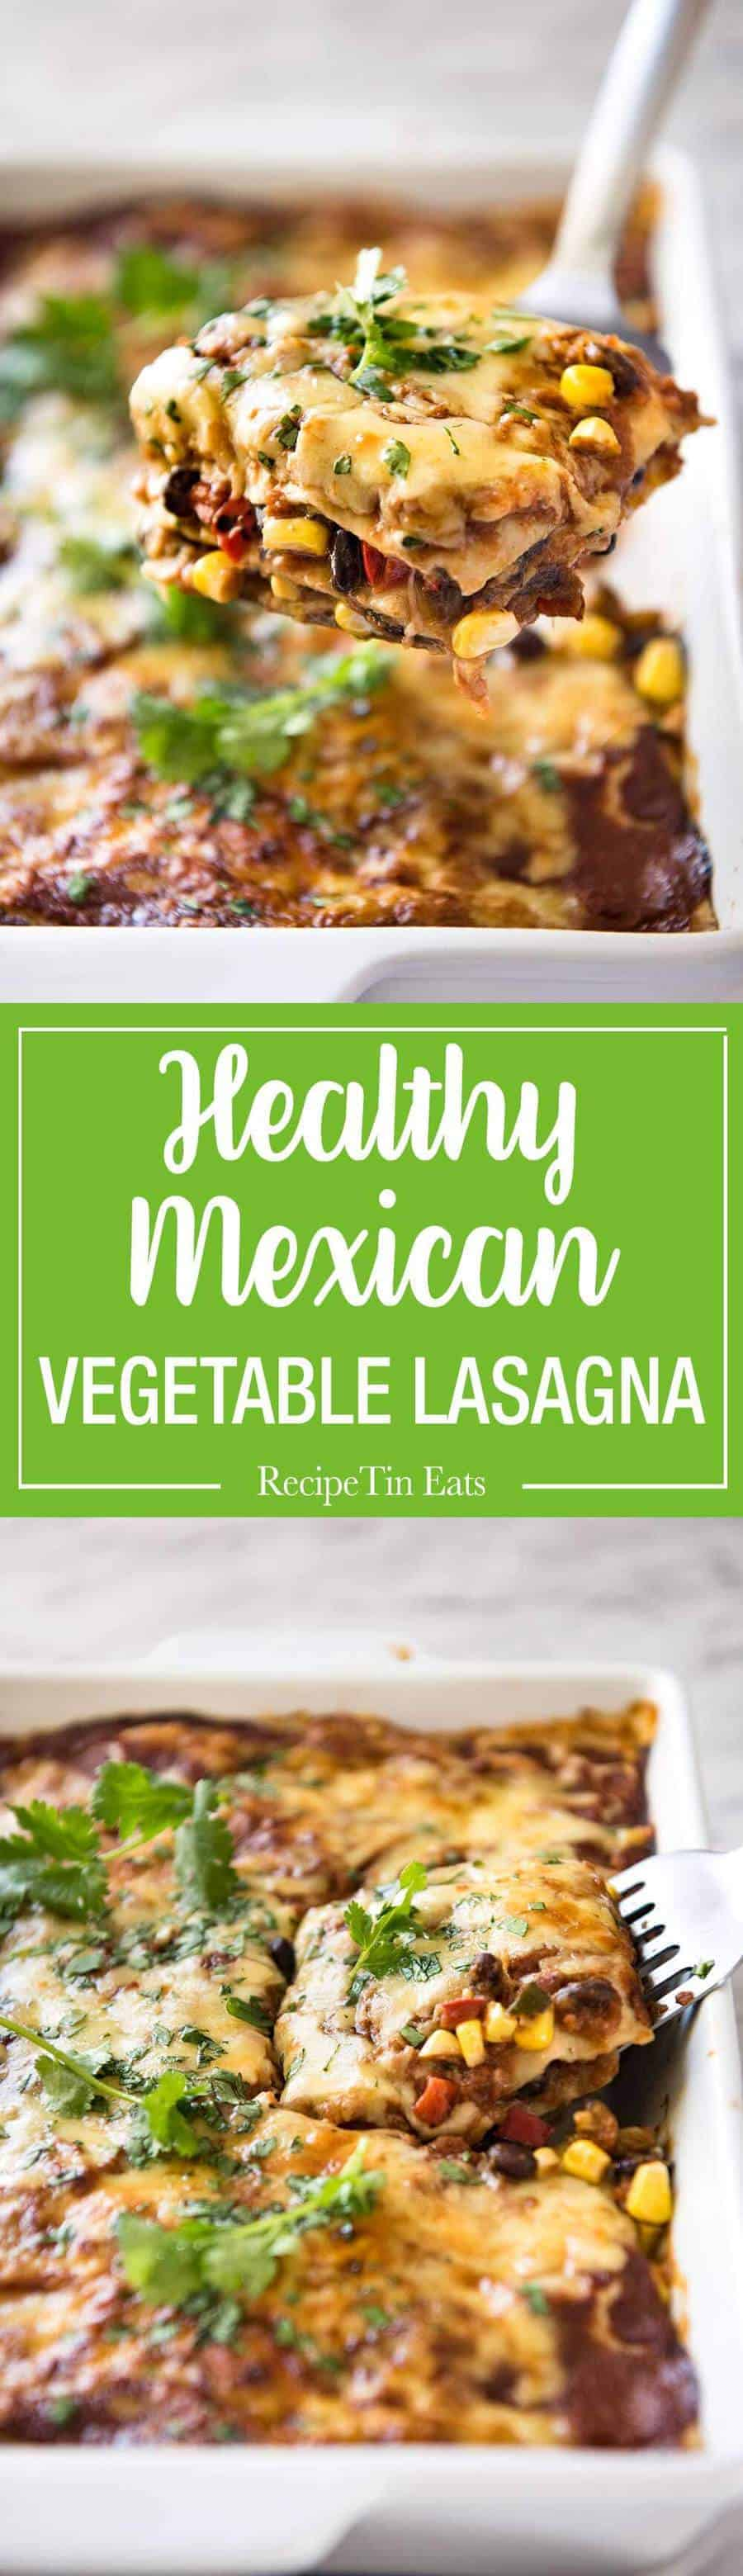 Simple Loaded Withmexican Vegetarian Mexican Lasagna Recipetin Eats Mexican Vegetarian Recipes Black Beans Vegetarian Mexican Recipes Rick Bayless Vegetarian Mexican Caserole Healthy nice food Vegetarian Mexican Recipes